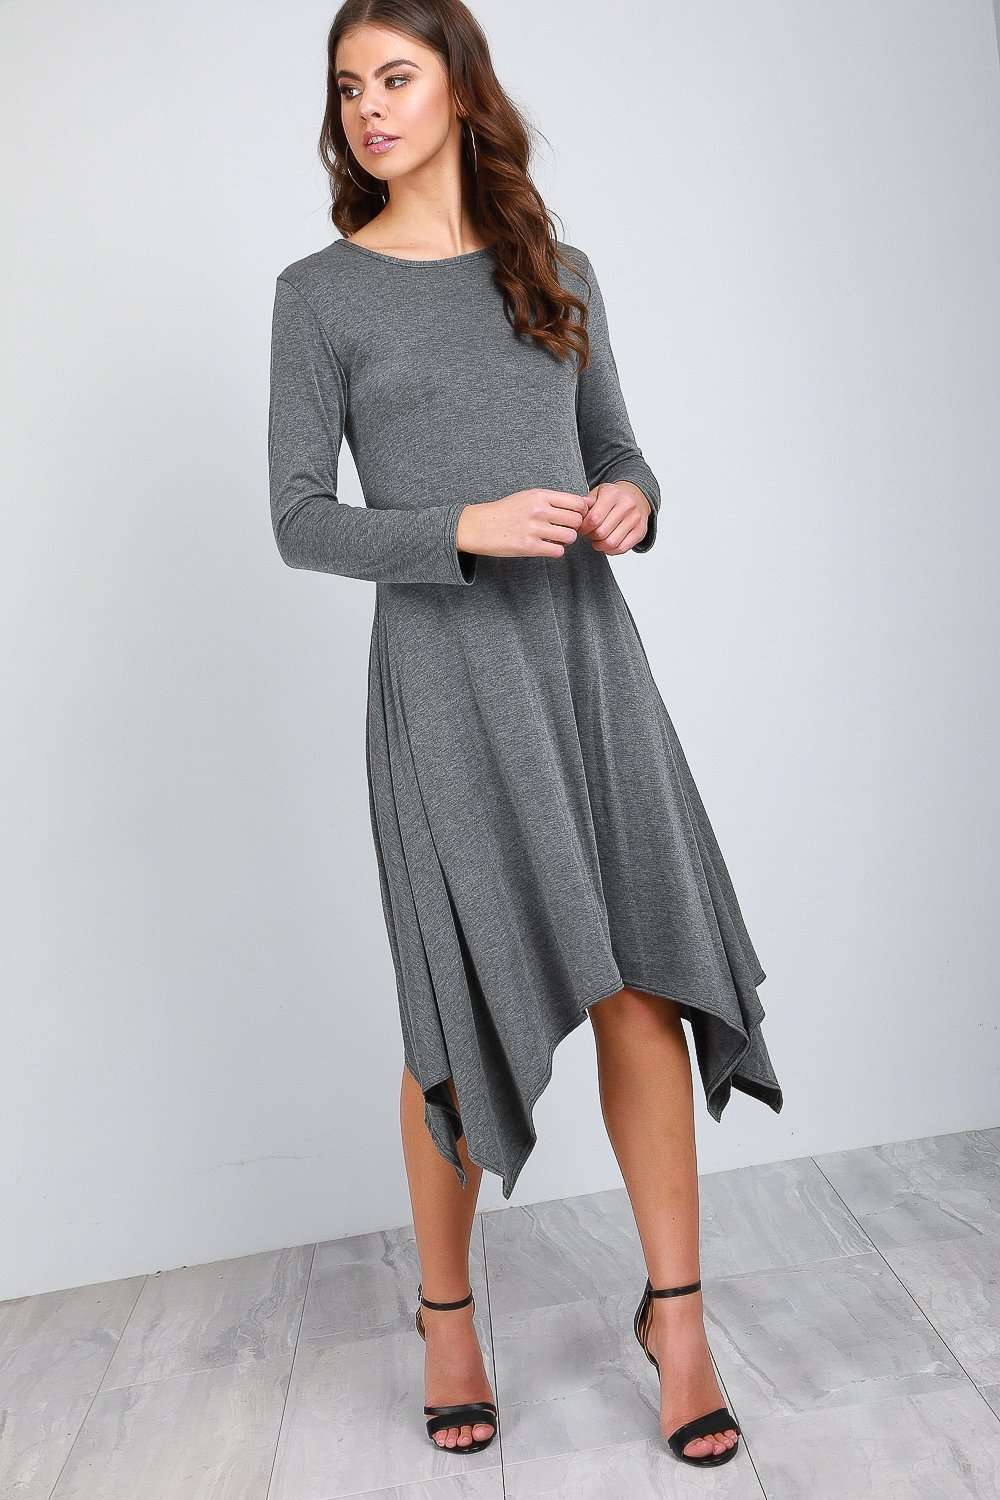 Long Sleeve Hanky Hem Black Midi Dress - bejealous-com